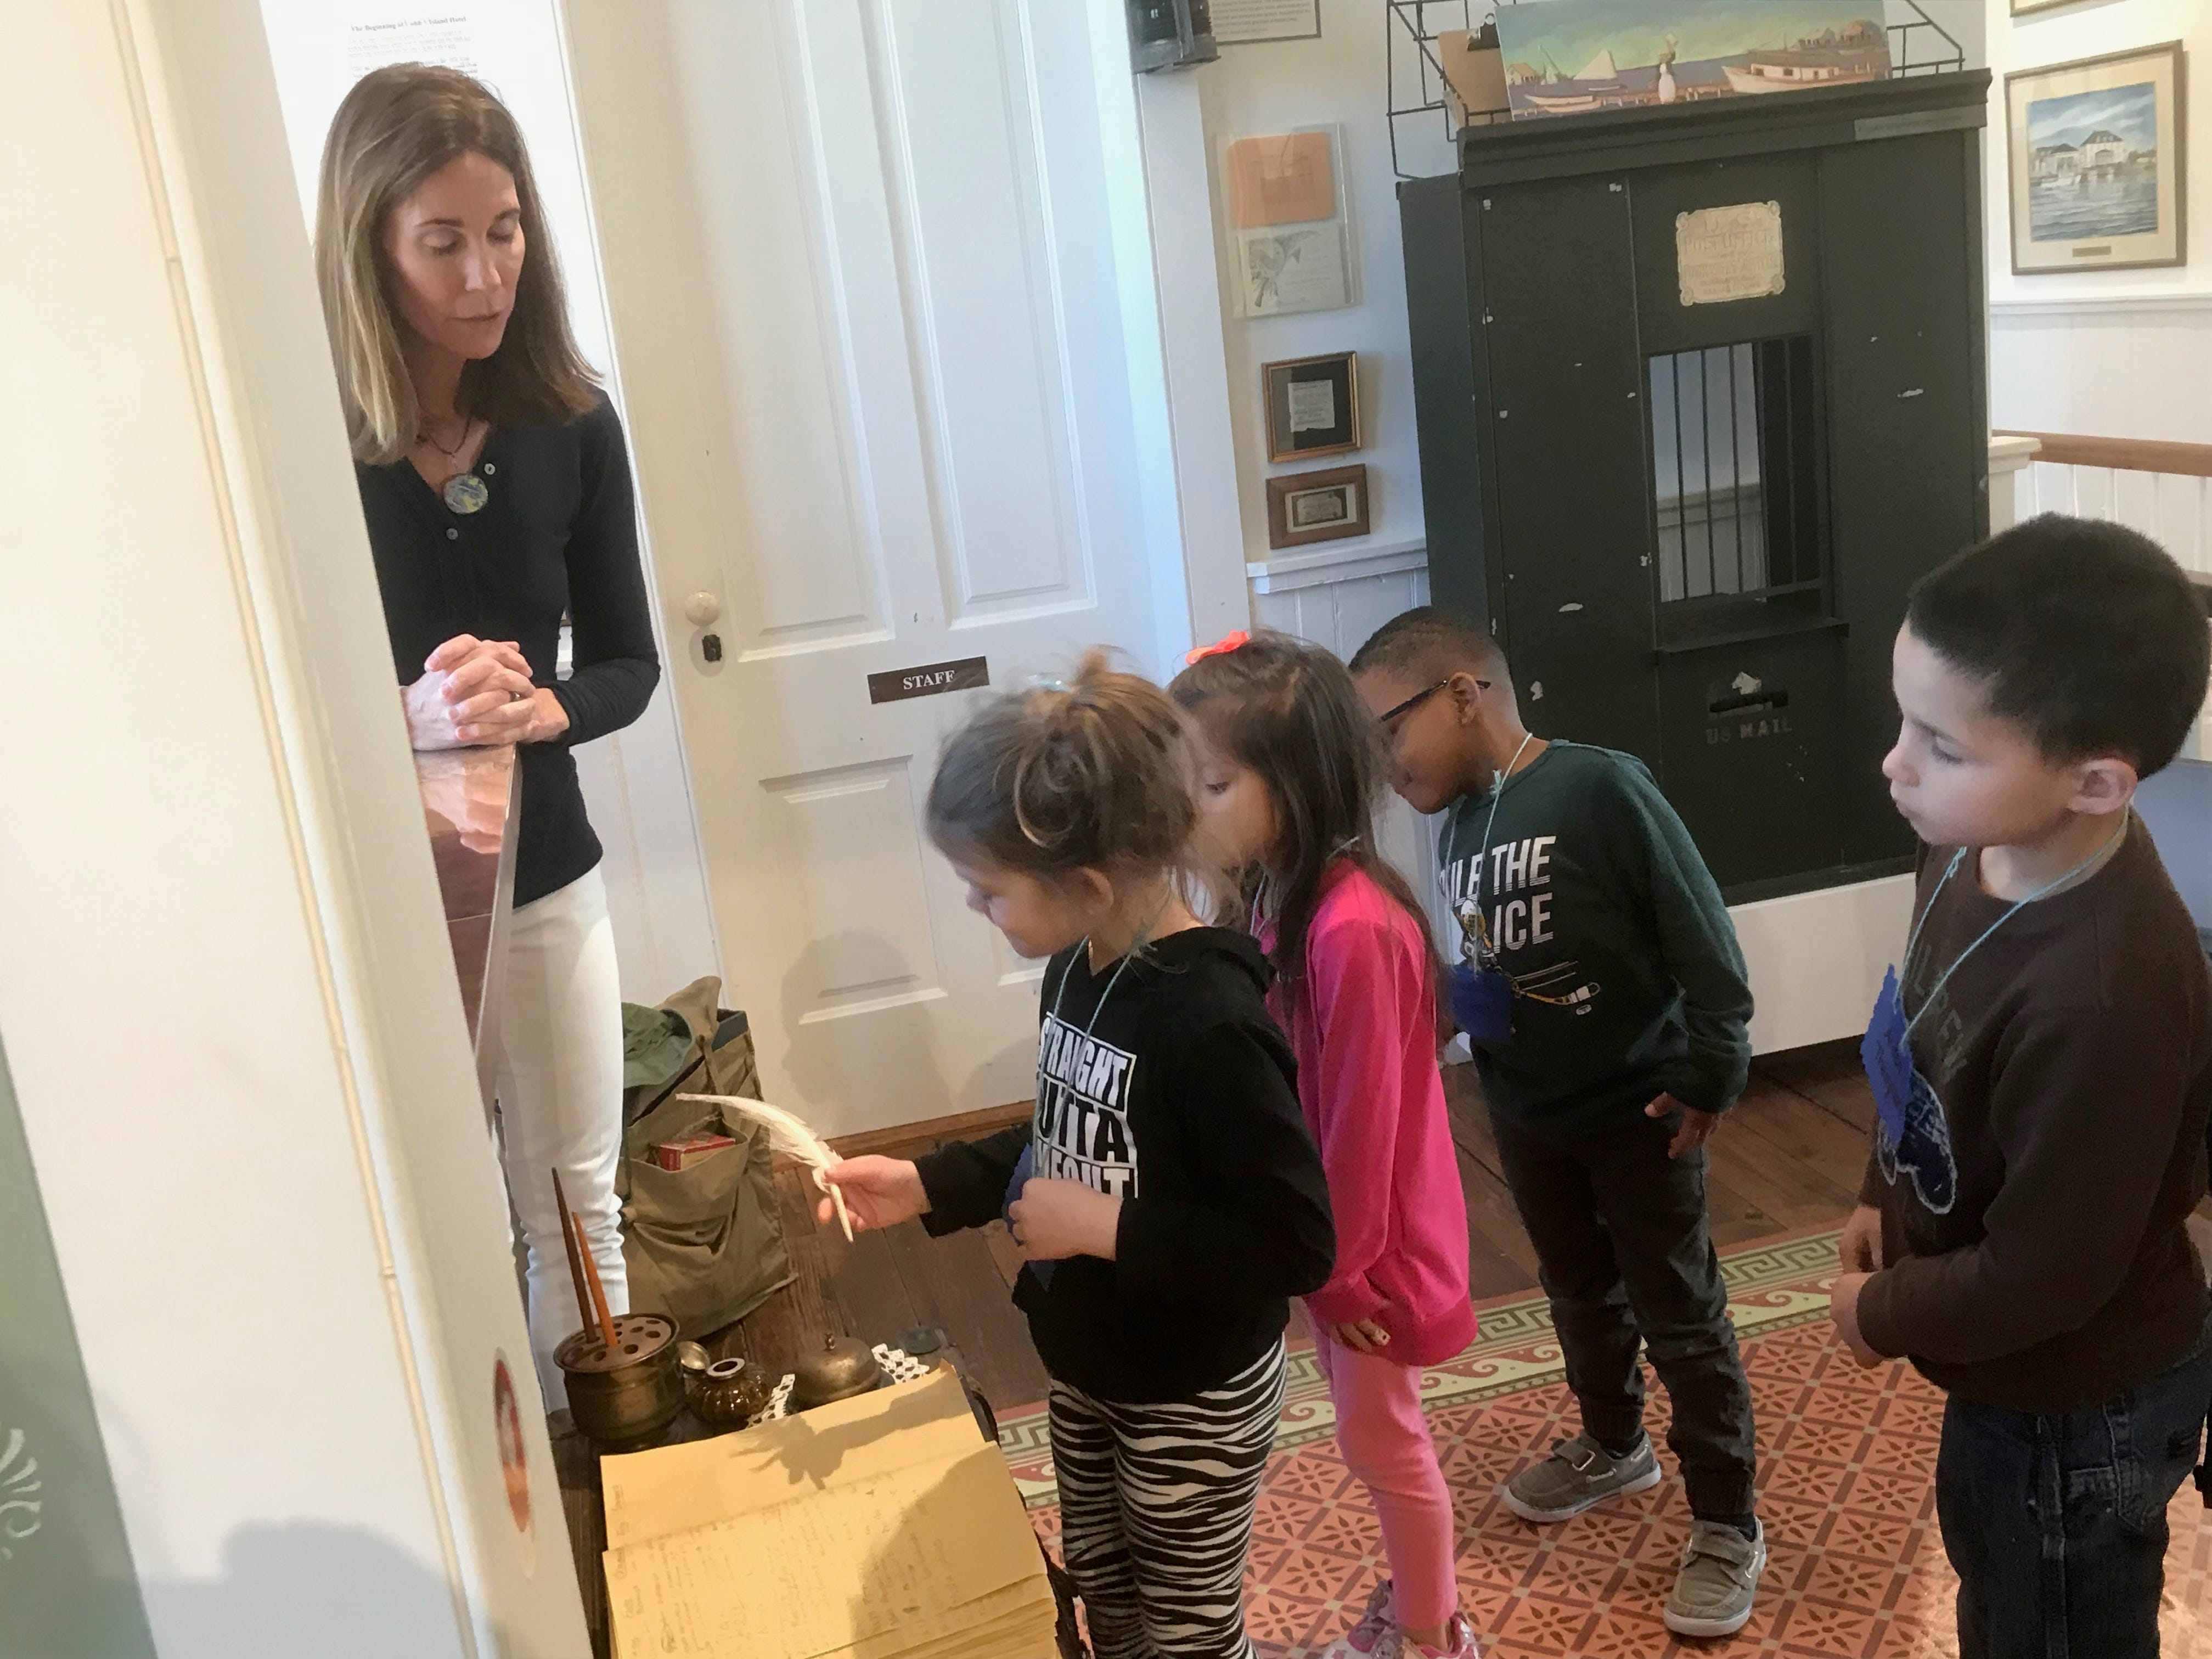 "A student ""checks in"" at the Cobb's Island Hotel exhibit as education director Sally Dickinson looks on, during a My First Field Trip event with Occohannock Elementary School pre-kindergarten students on Tuesday, March 26, 2019  at the Barrier Islands Center in Machipongo, Virginia."